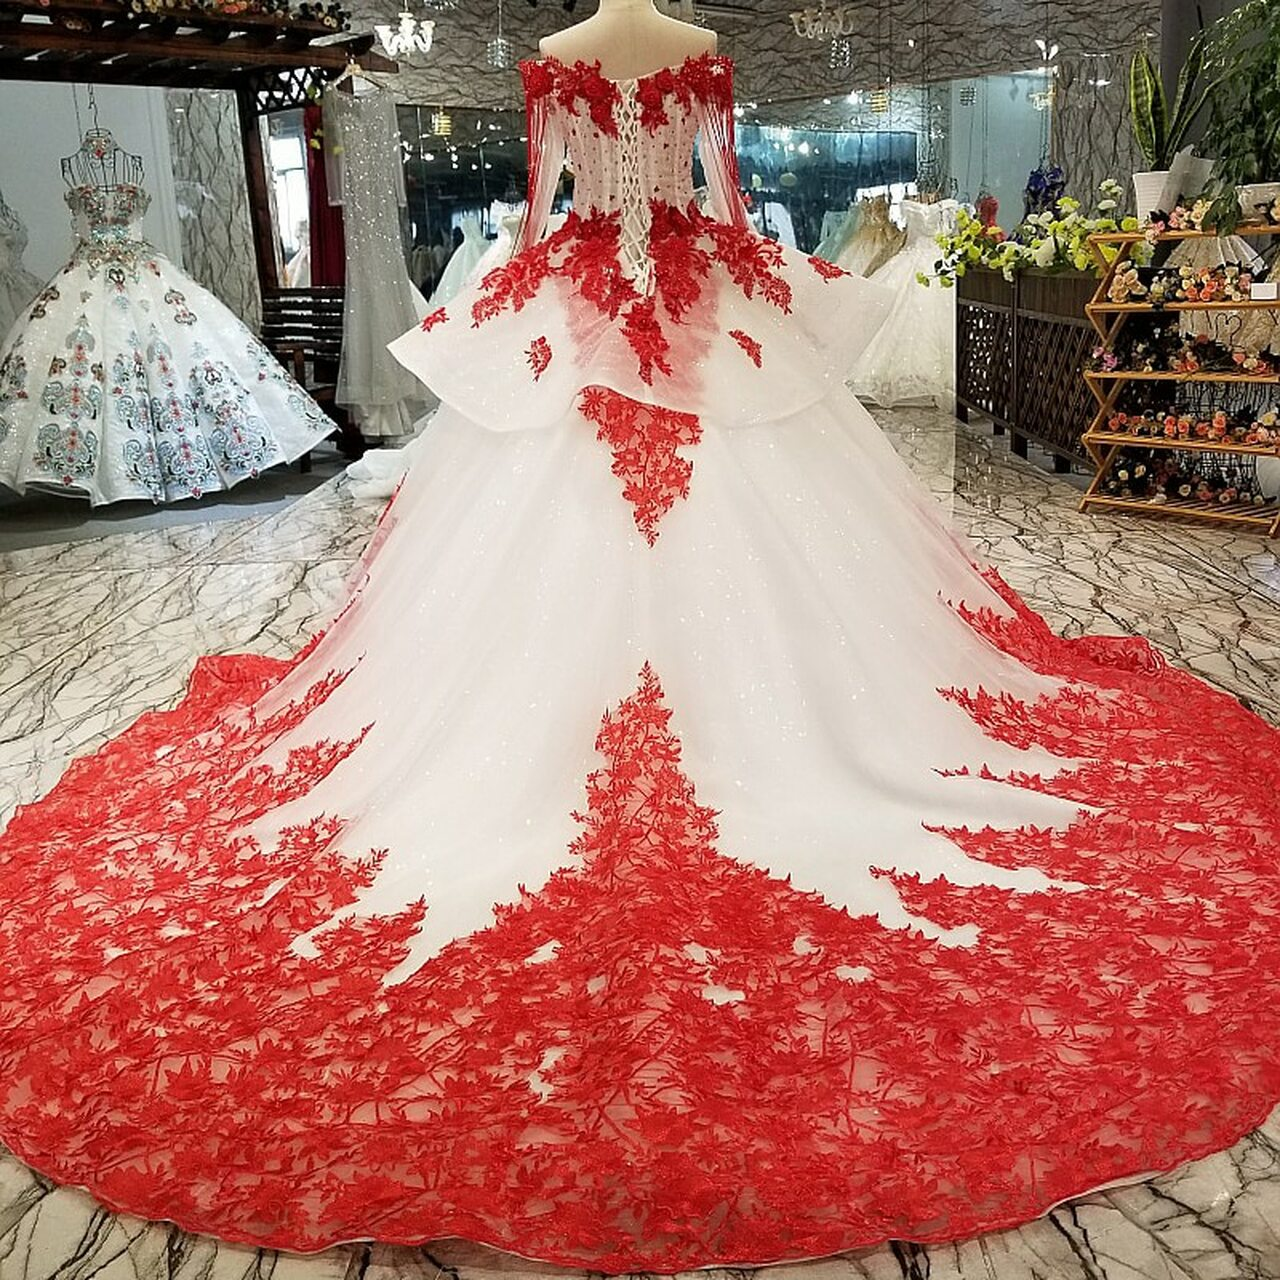 Axjfu White Lace Princess Red Flower Beading Crystal Ruffles